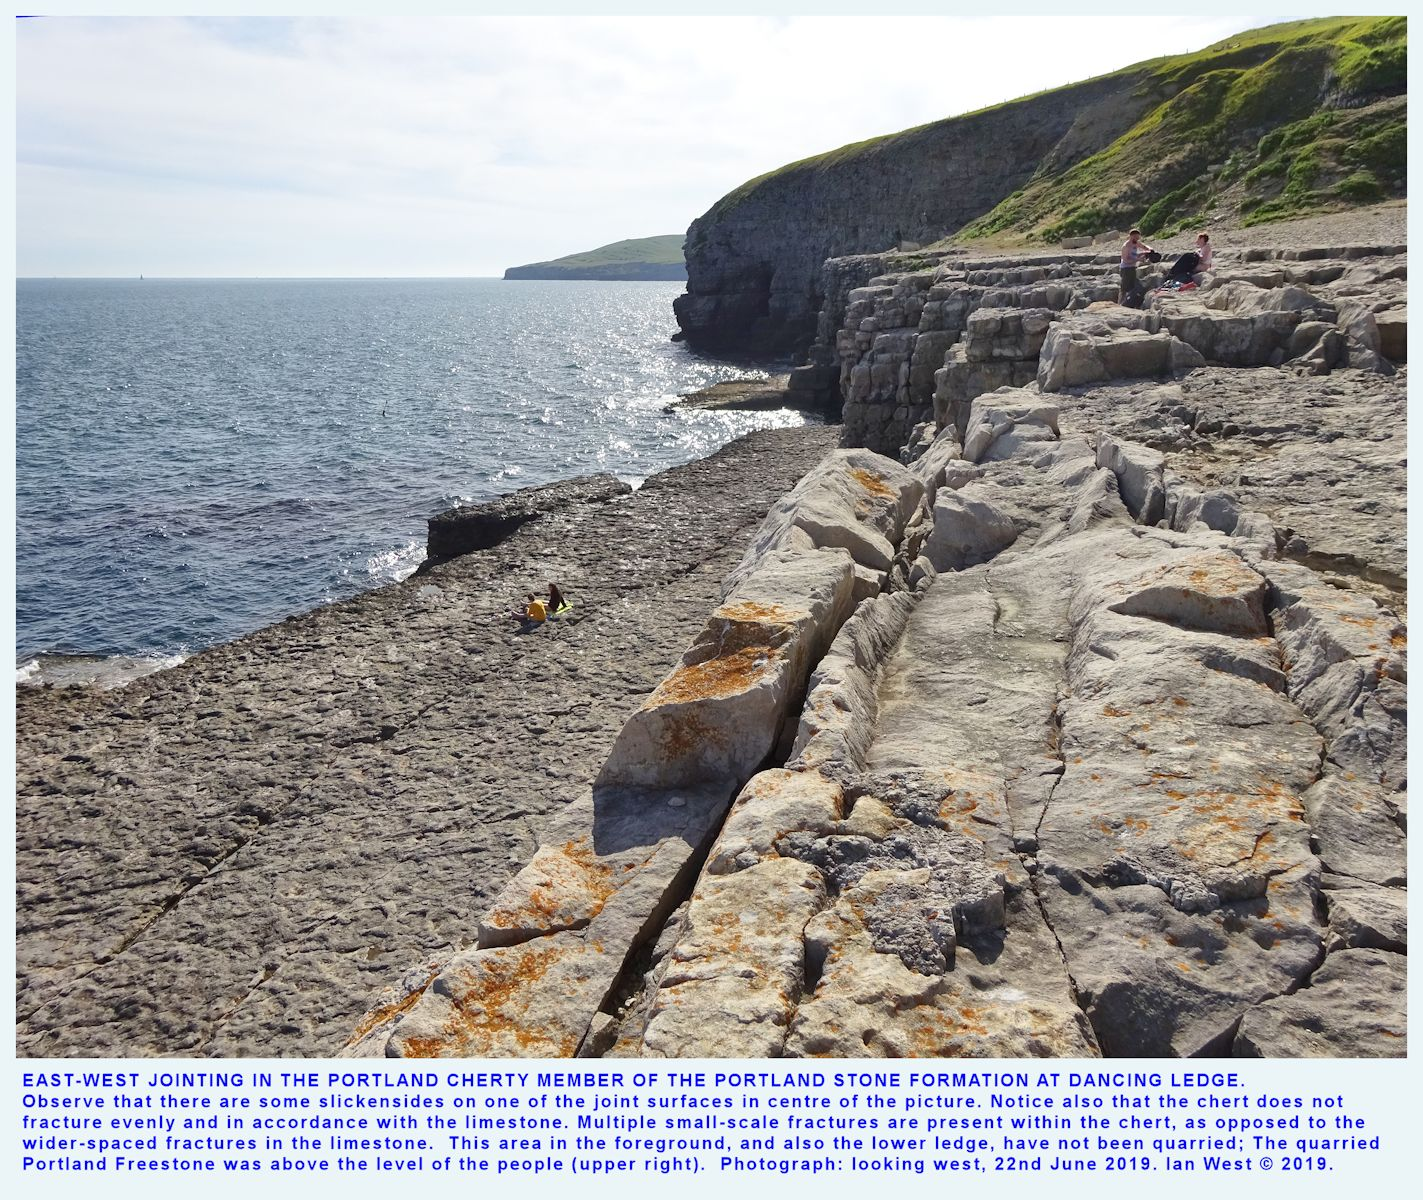 The east-west jointing pattern in the Portland Cherty Member at the Dancing Ledge quarry, 22nd June 2019, Ian West